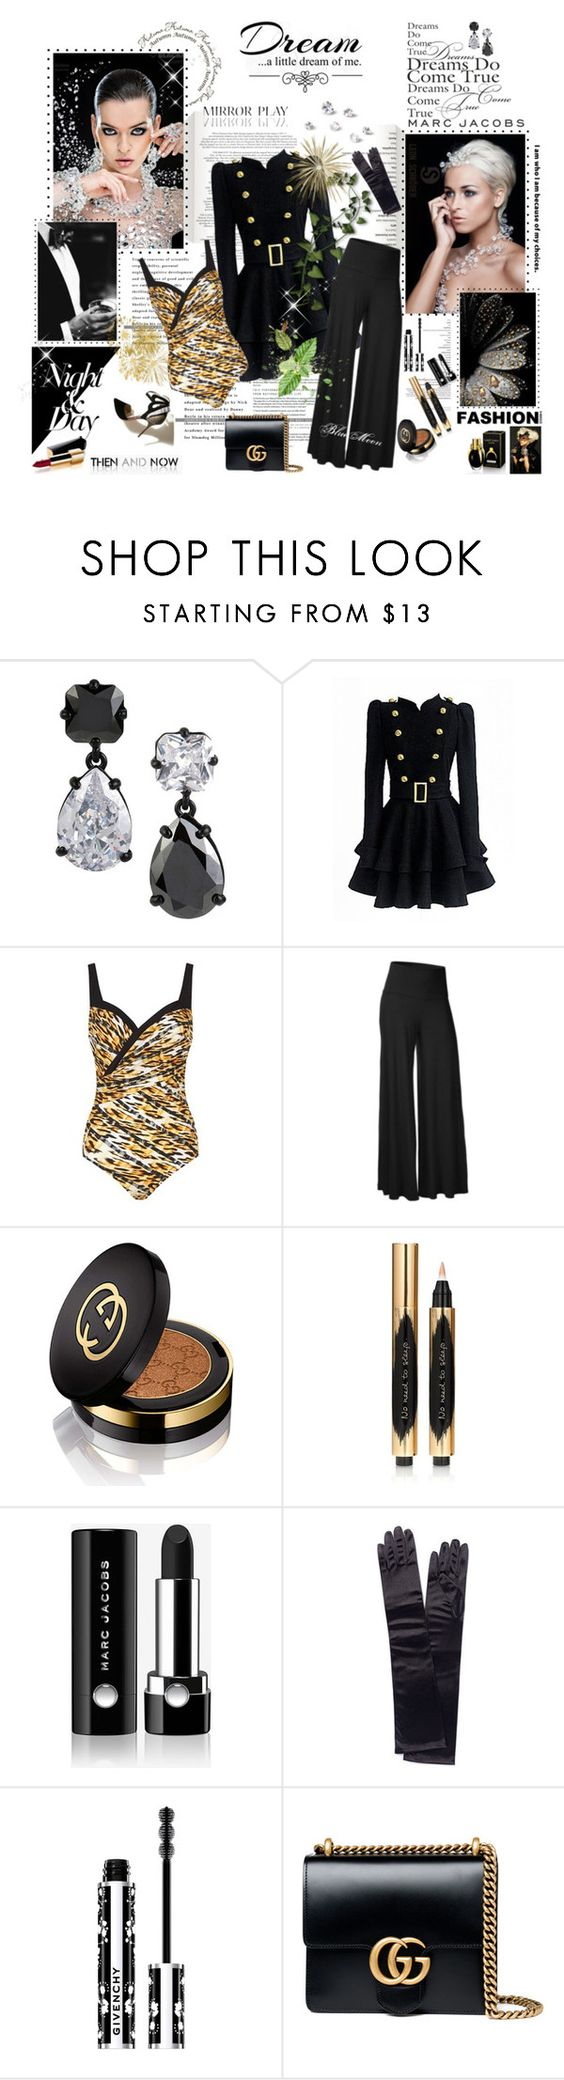 """""""Dream a little dream of me"""" by bluemoon ❤ liked on Polyvore featuring Dolce&Gabbana, Love Quotes Scarves, Betsey Johnson, Marc Jacobs, Chanel, Maryan Mehlhorn, Gucci, Yves Saint Laurent, Monsoon and Givenchy"""